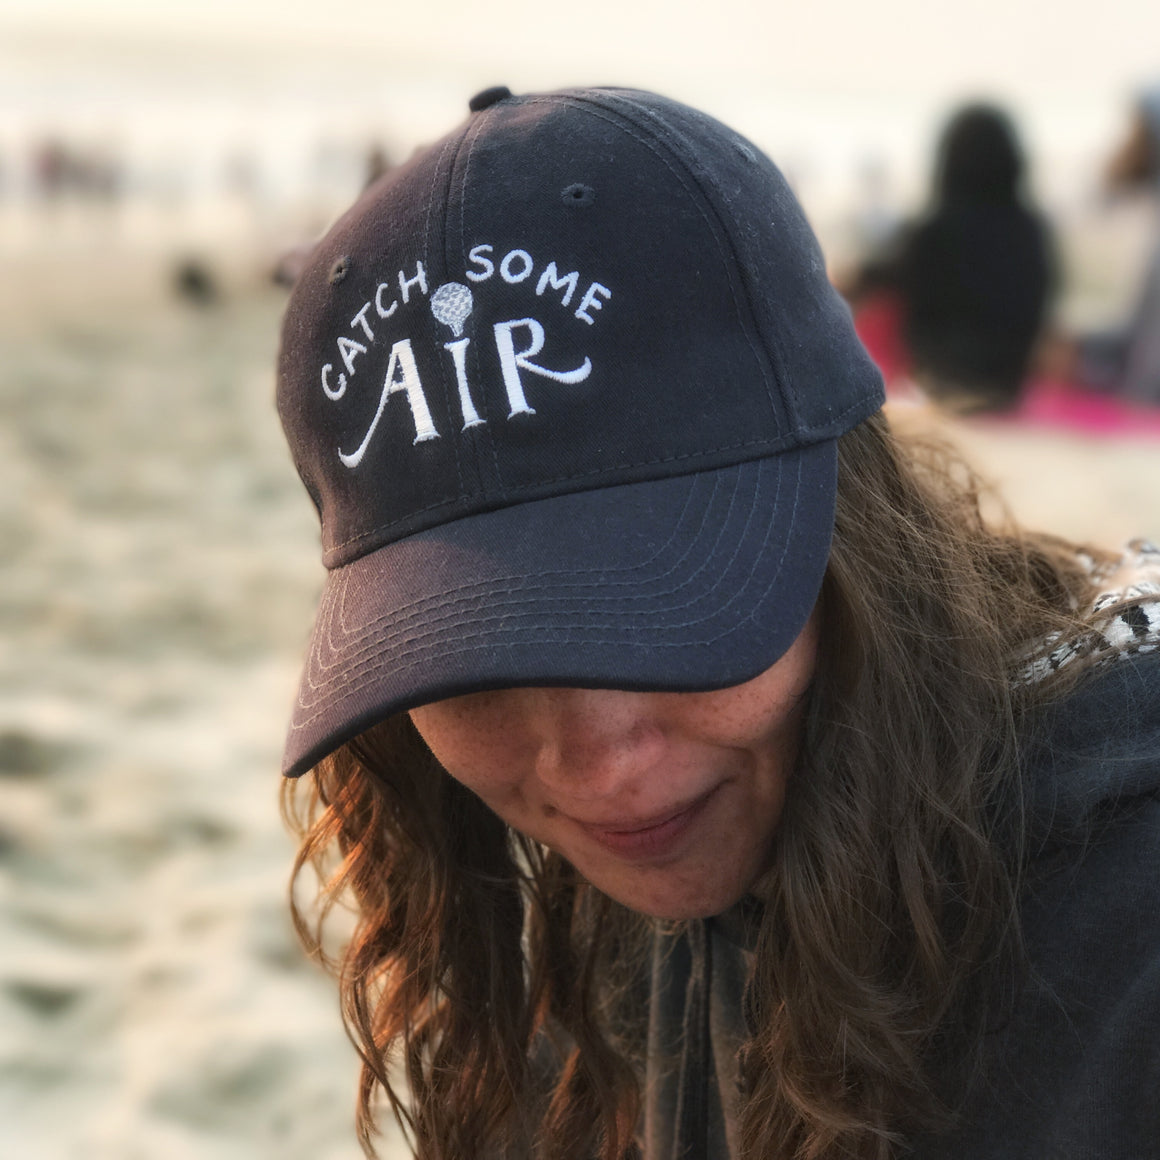 """CATCH SOME AIR"" baseball cap"